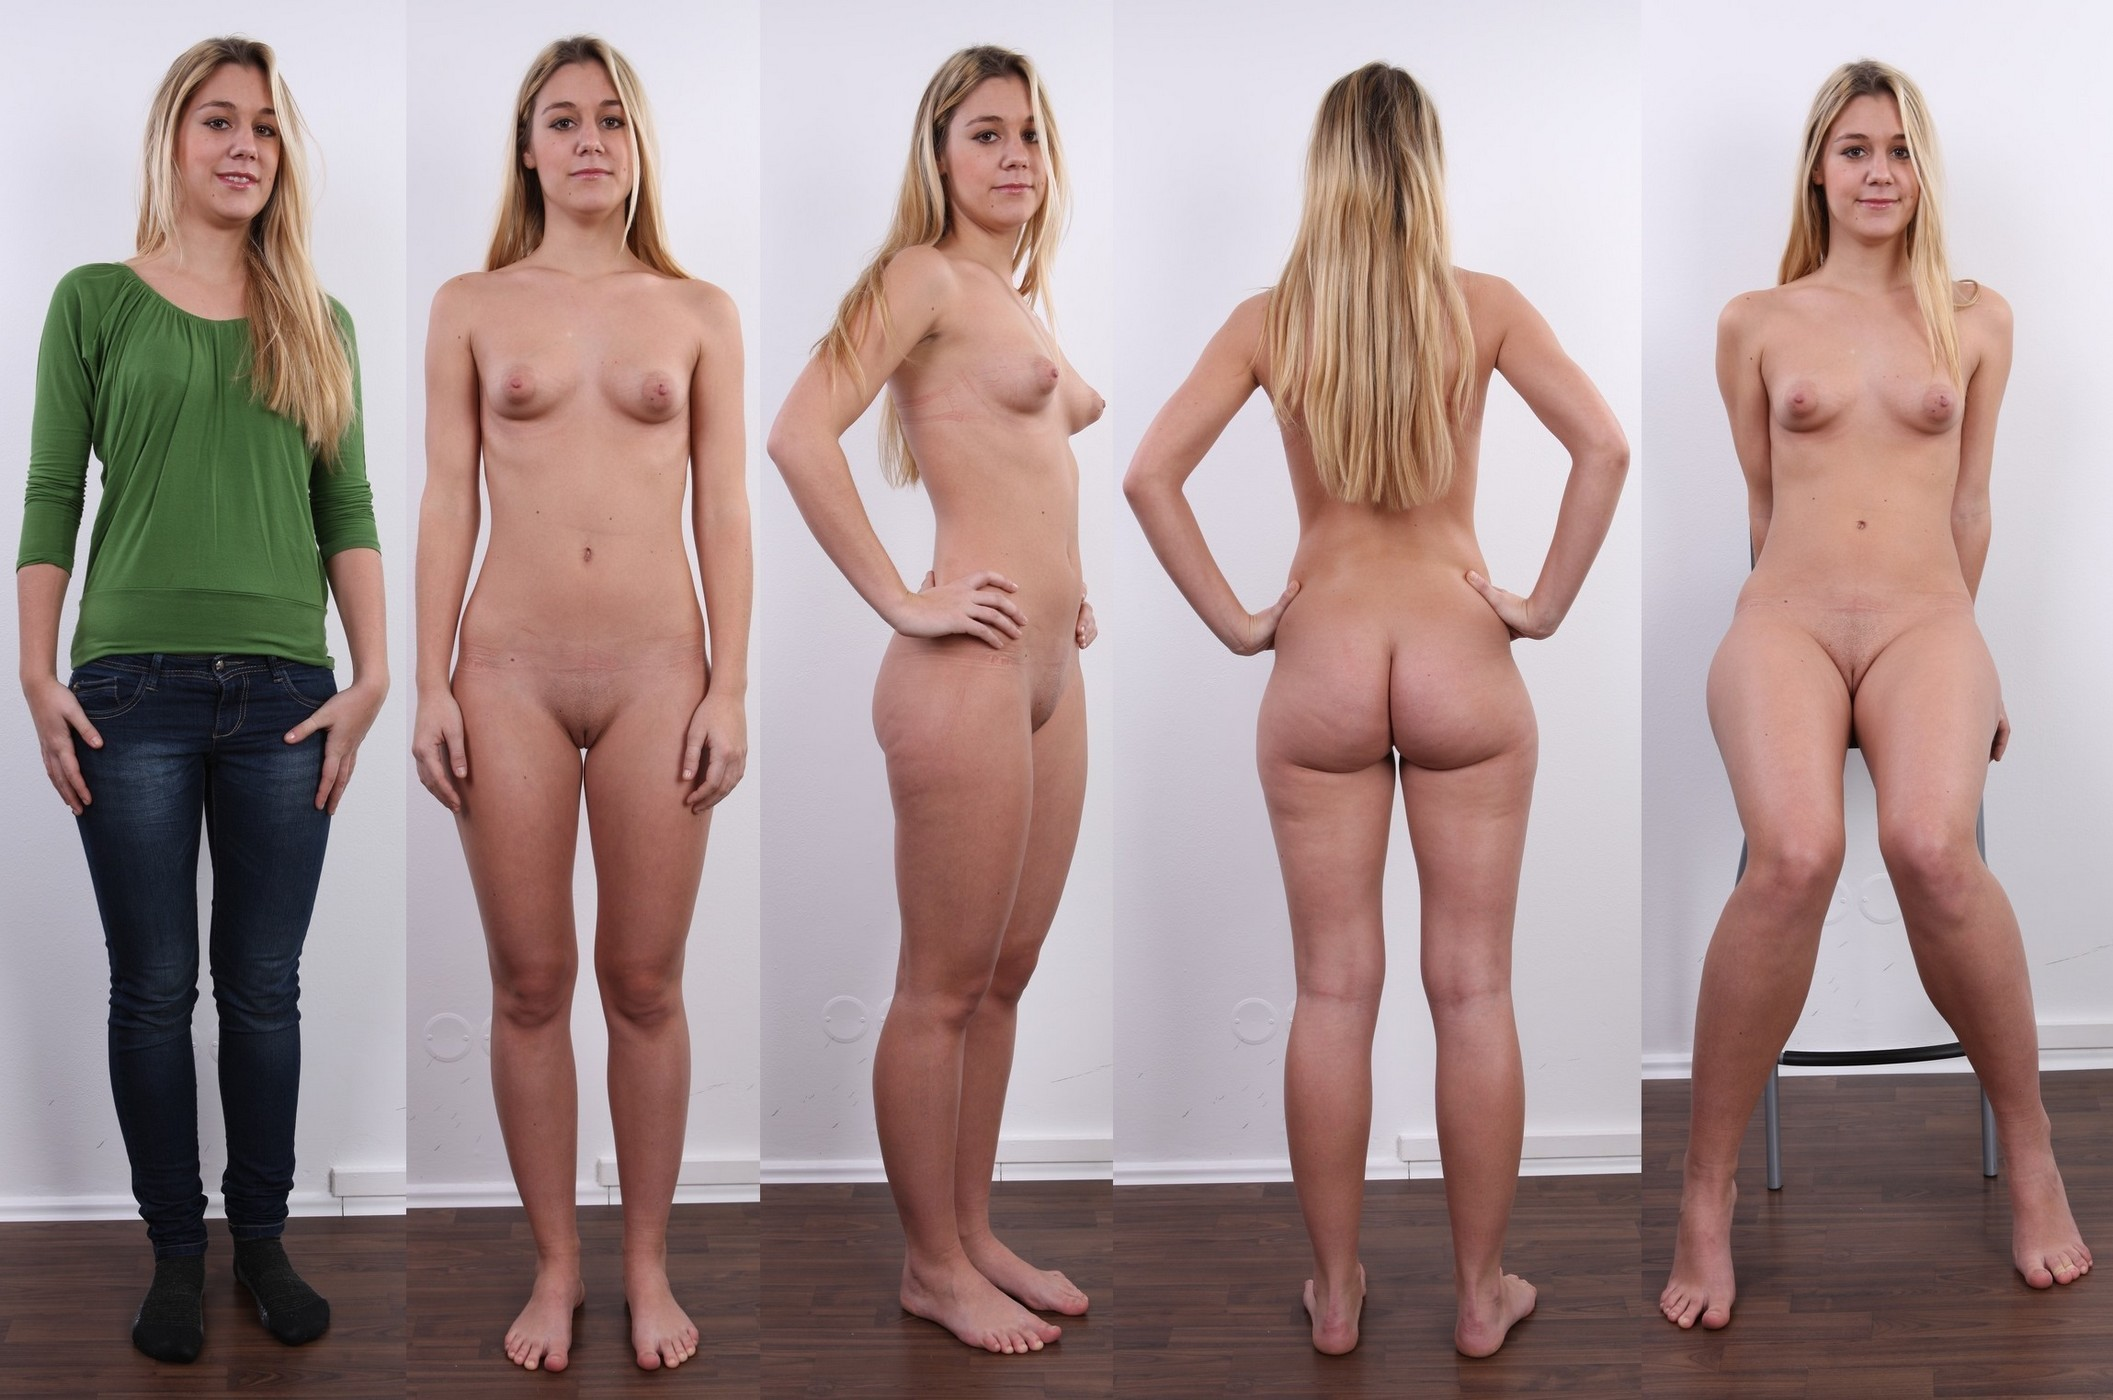 Naked girl lineup found